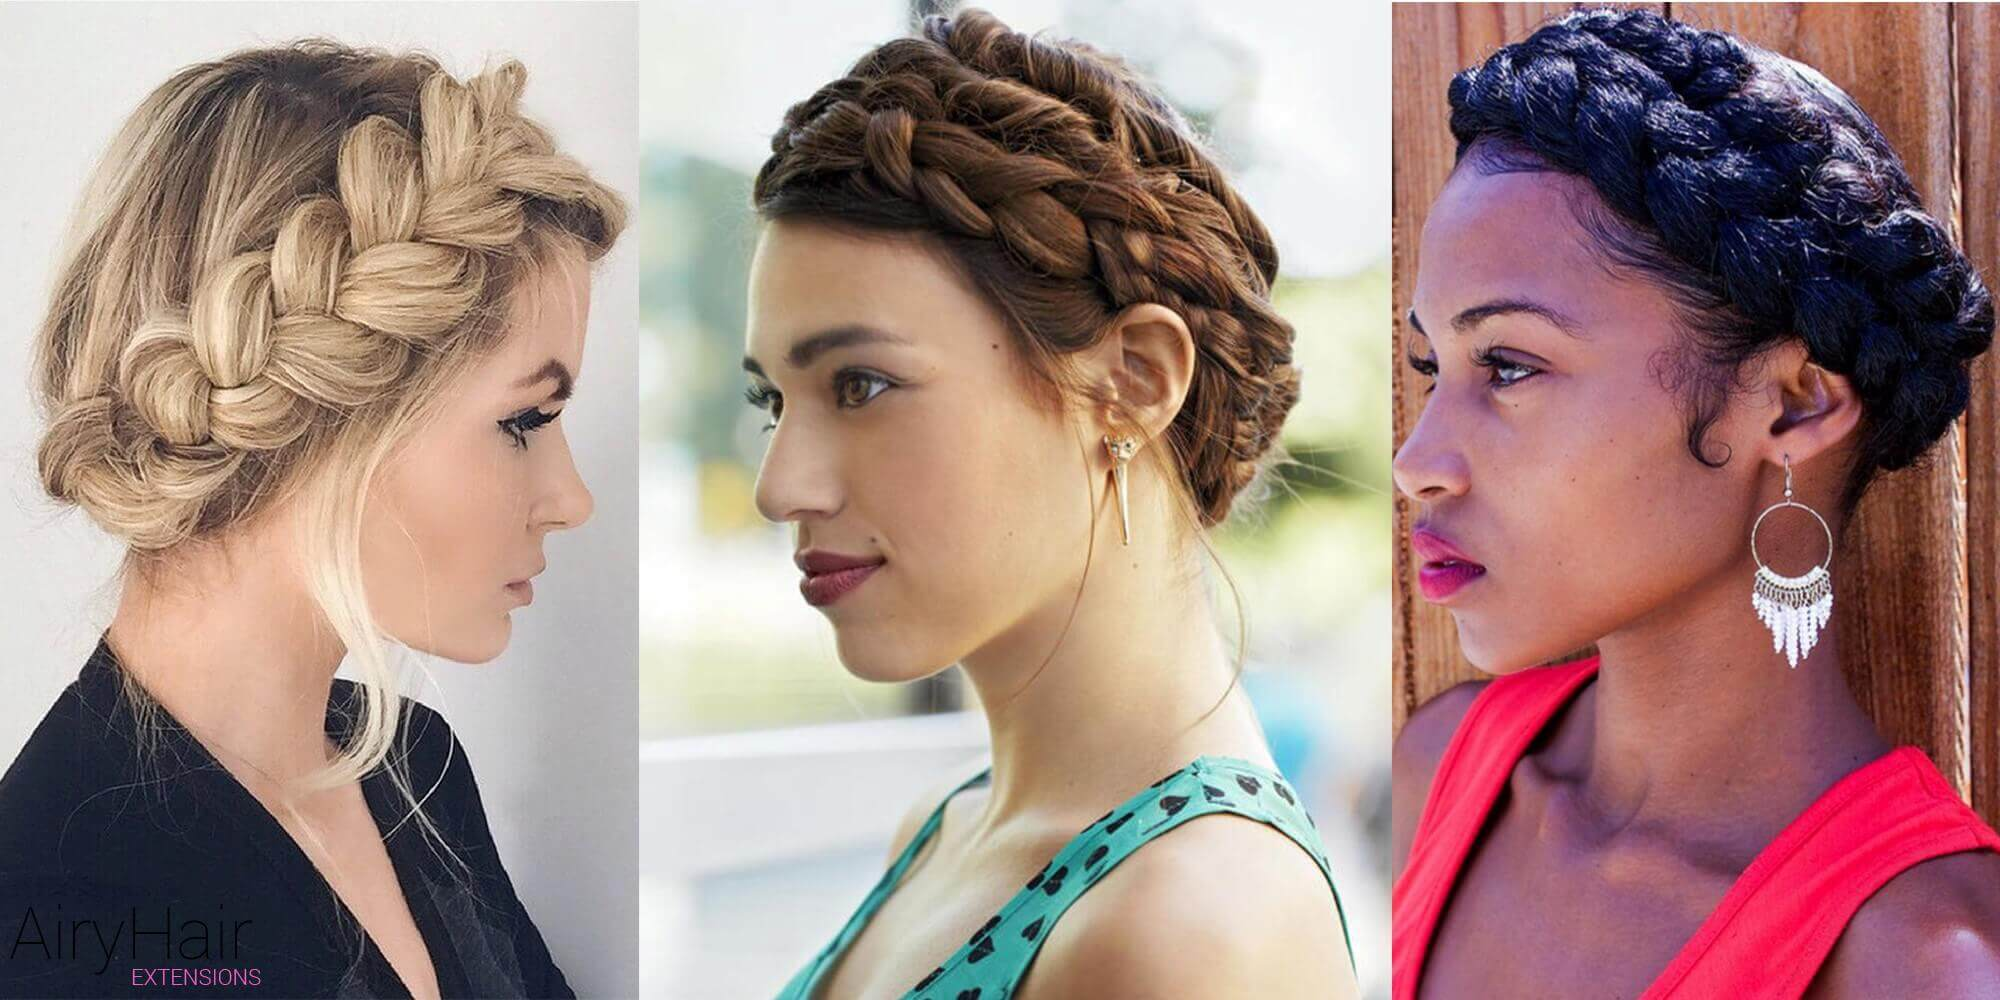 New Years Eve Hairstyles You Can Do in MereMinutes